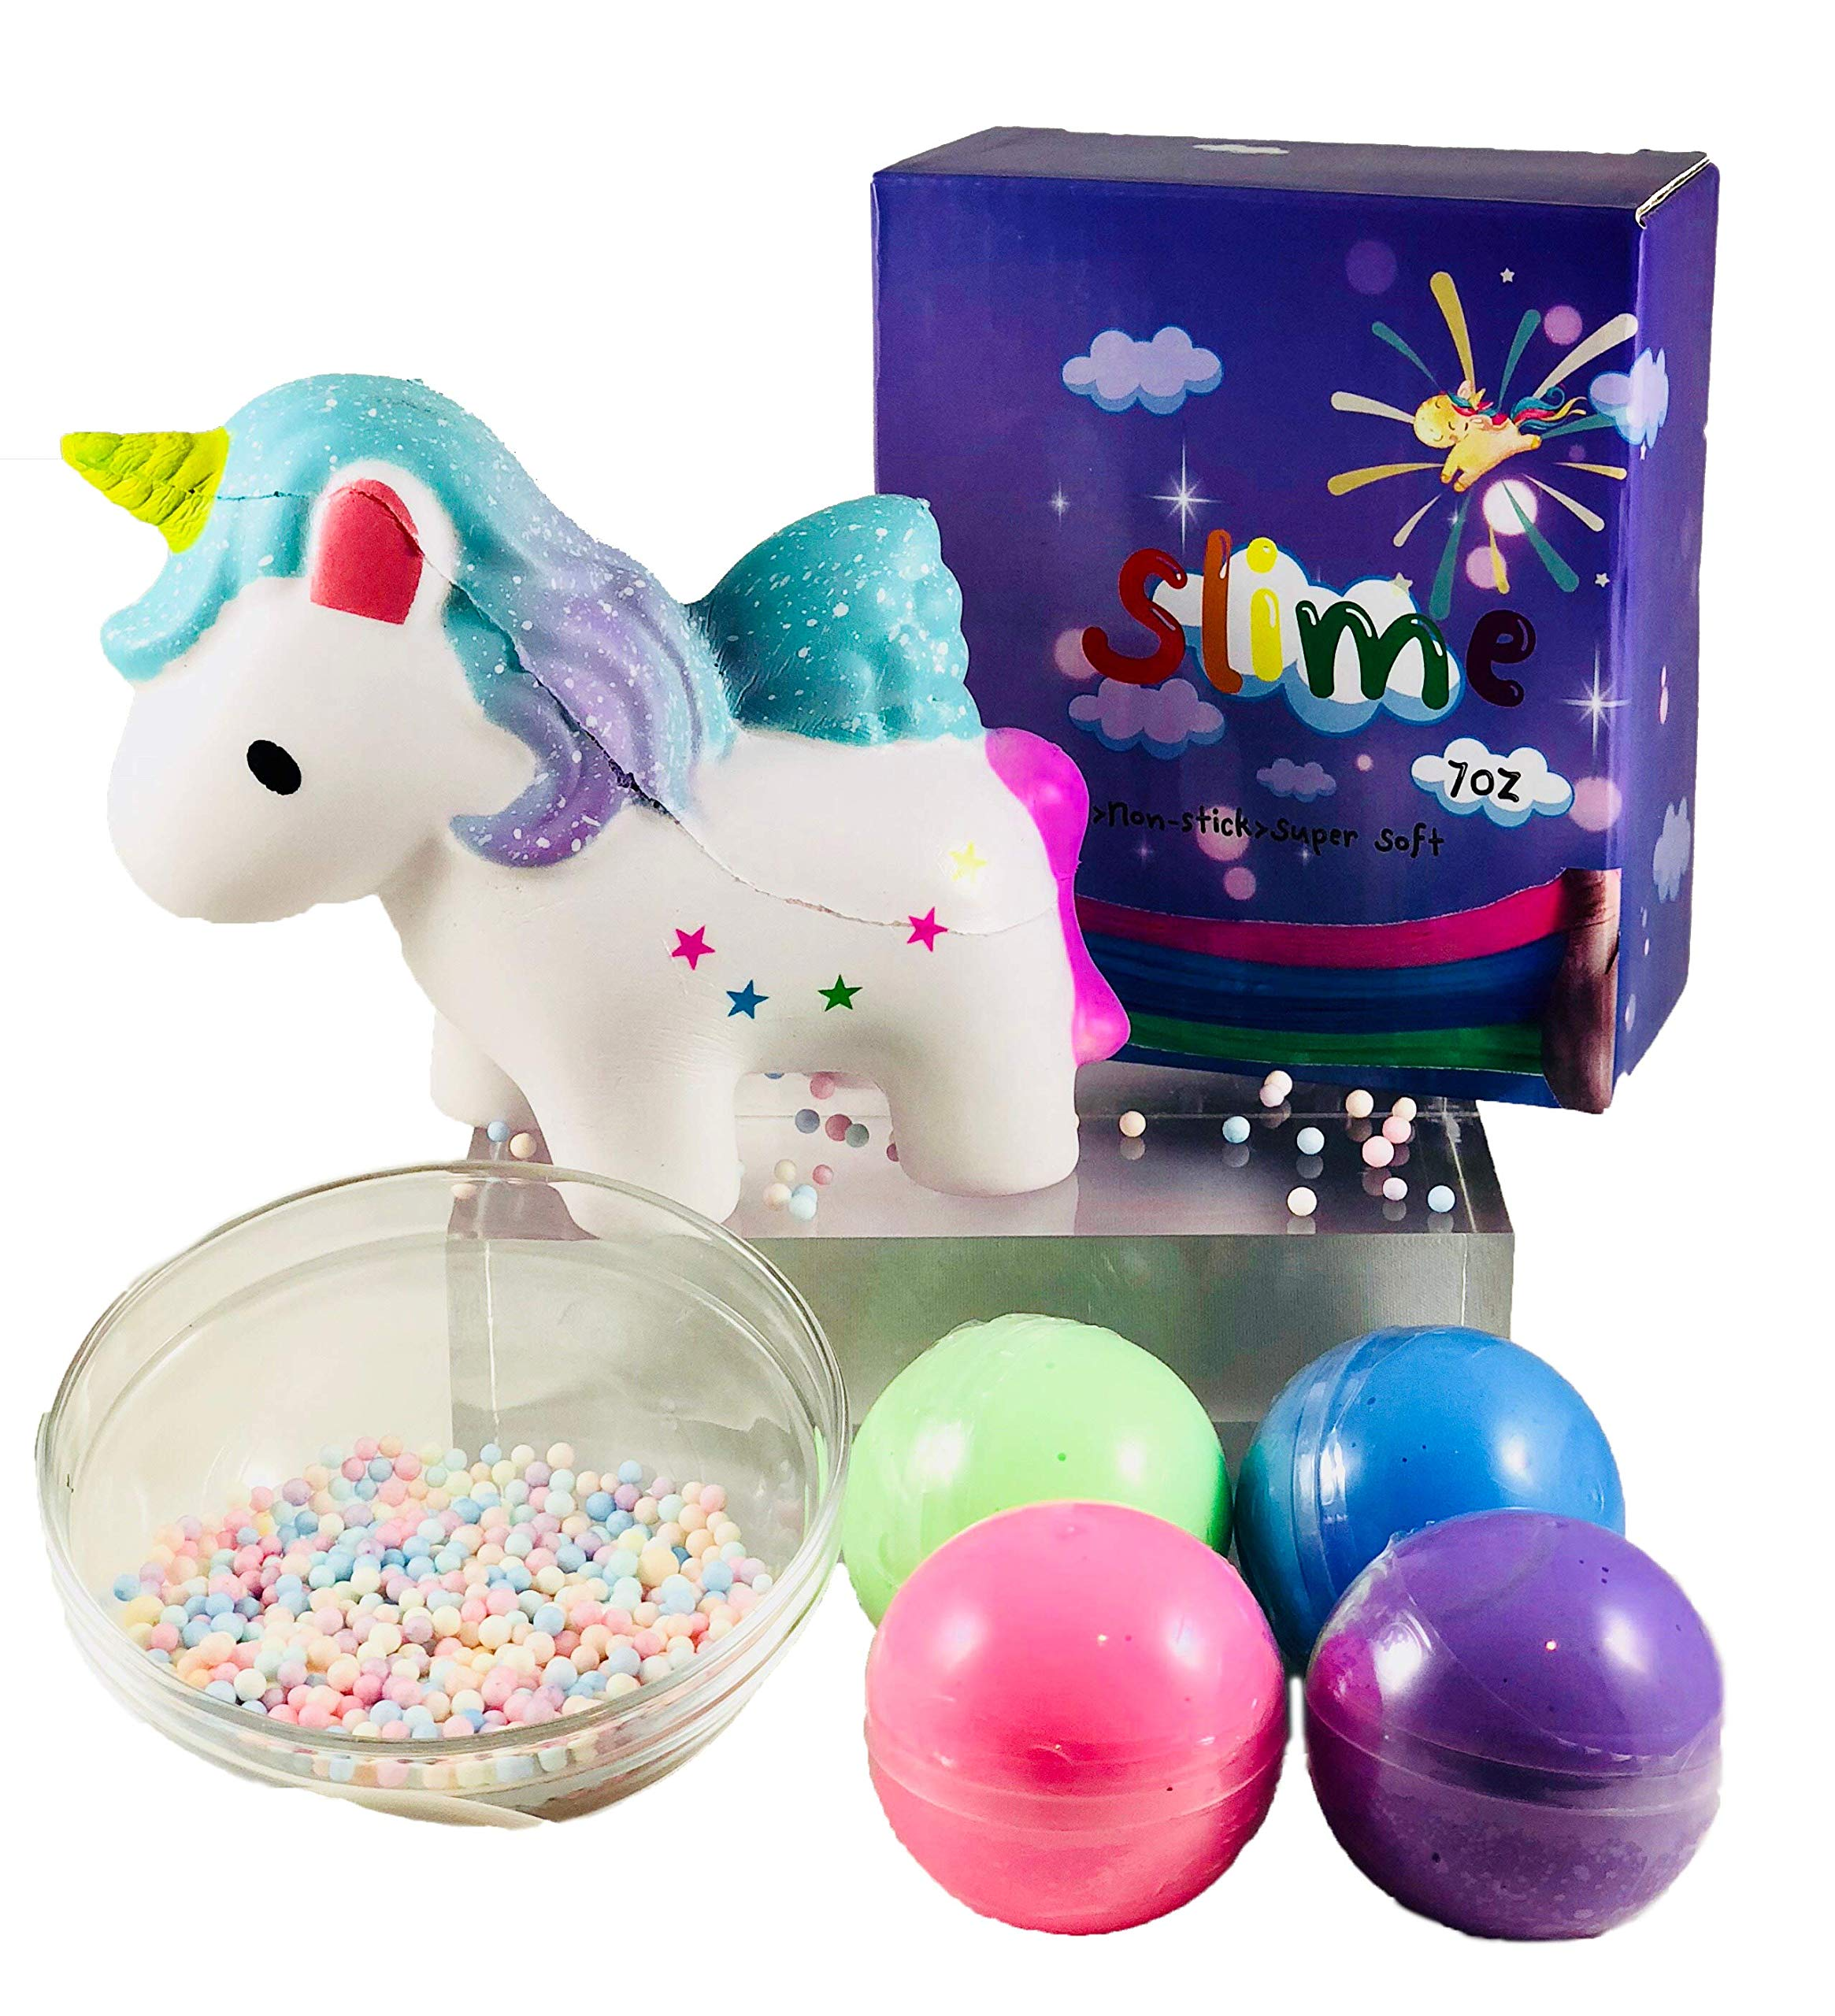 HMC PRODUCTS Slime Kit, Squishies Unicorn Poop - DIY Fluffy Slime Set, Squishie & Slime for Kids, Stress Relief Toys. 4 Colors of Slime, Beads and Unicorn Squishy, Squishie is Scented and Slow Rising